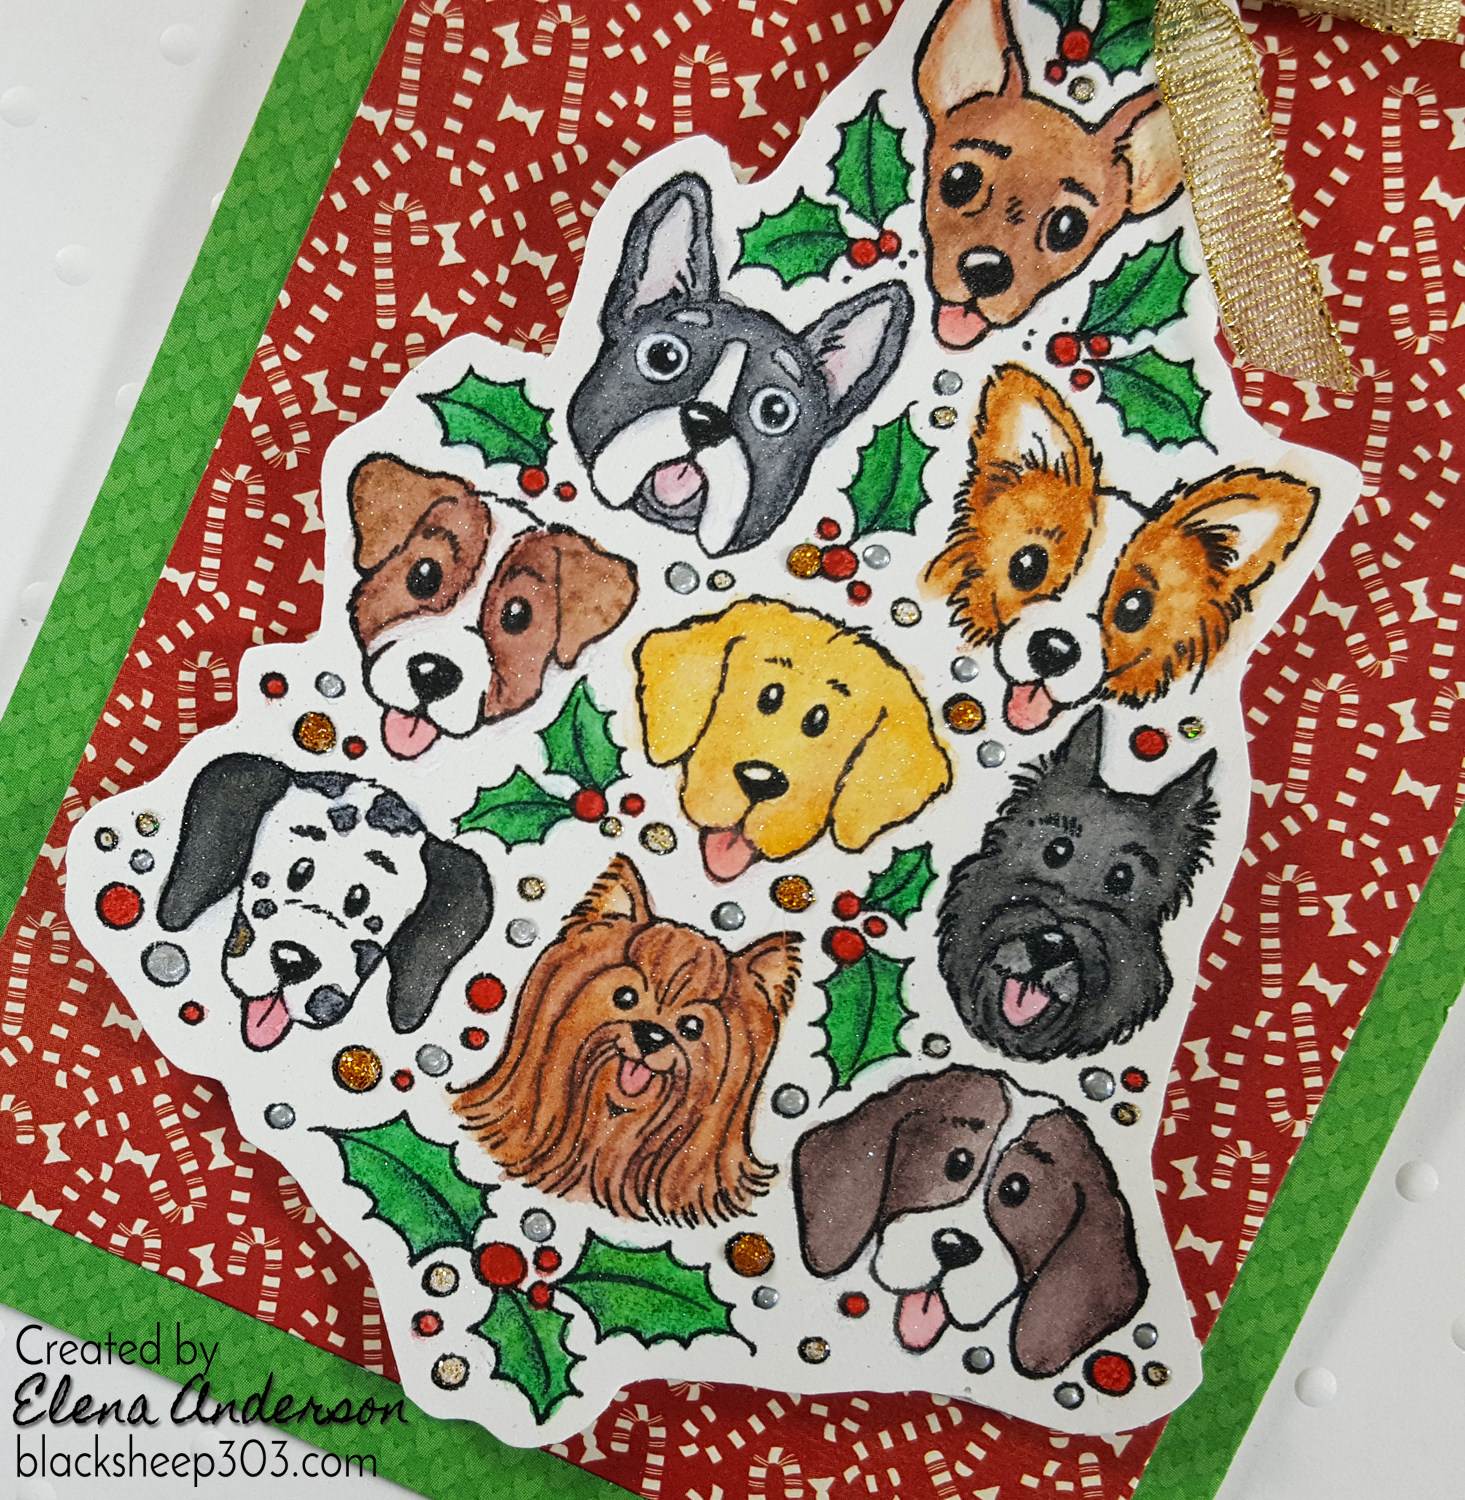 Dog Christmas Tree Card with Inktense Pencils - Detail